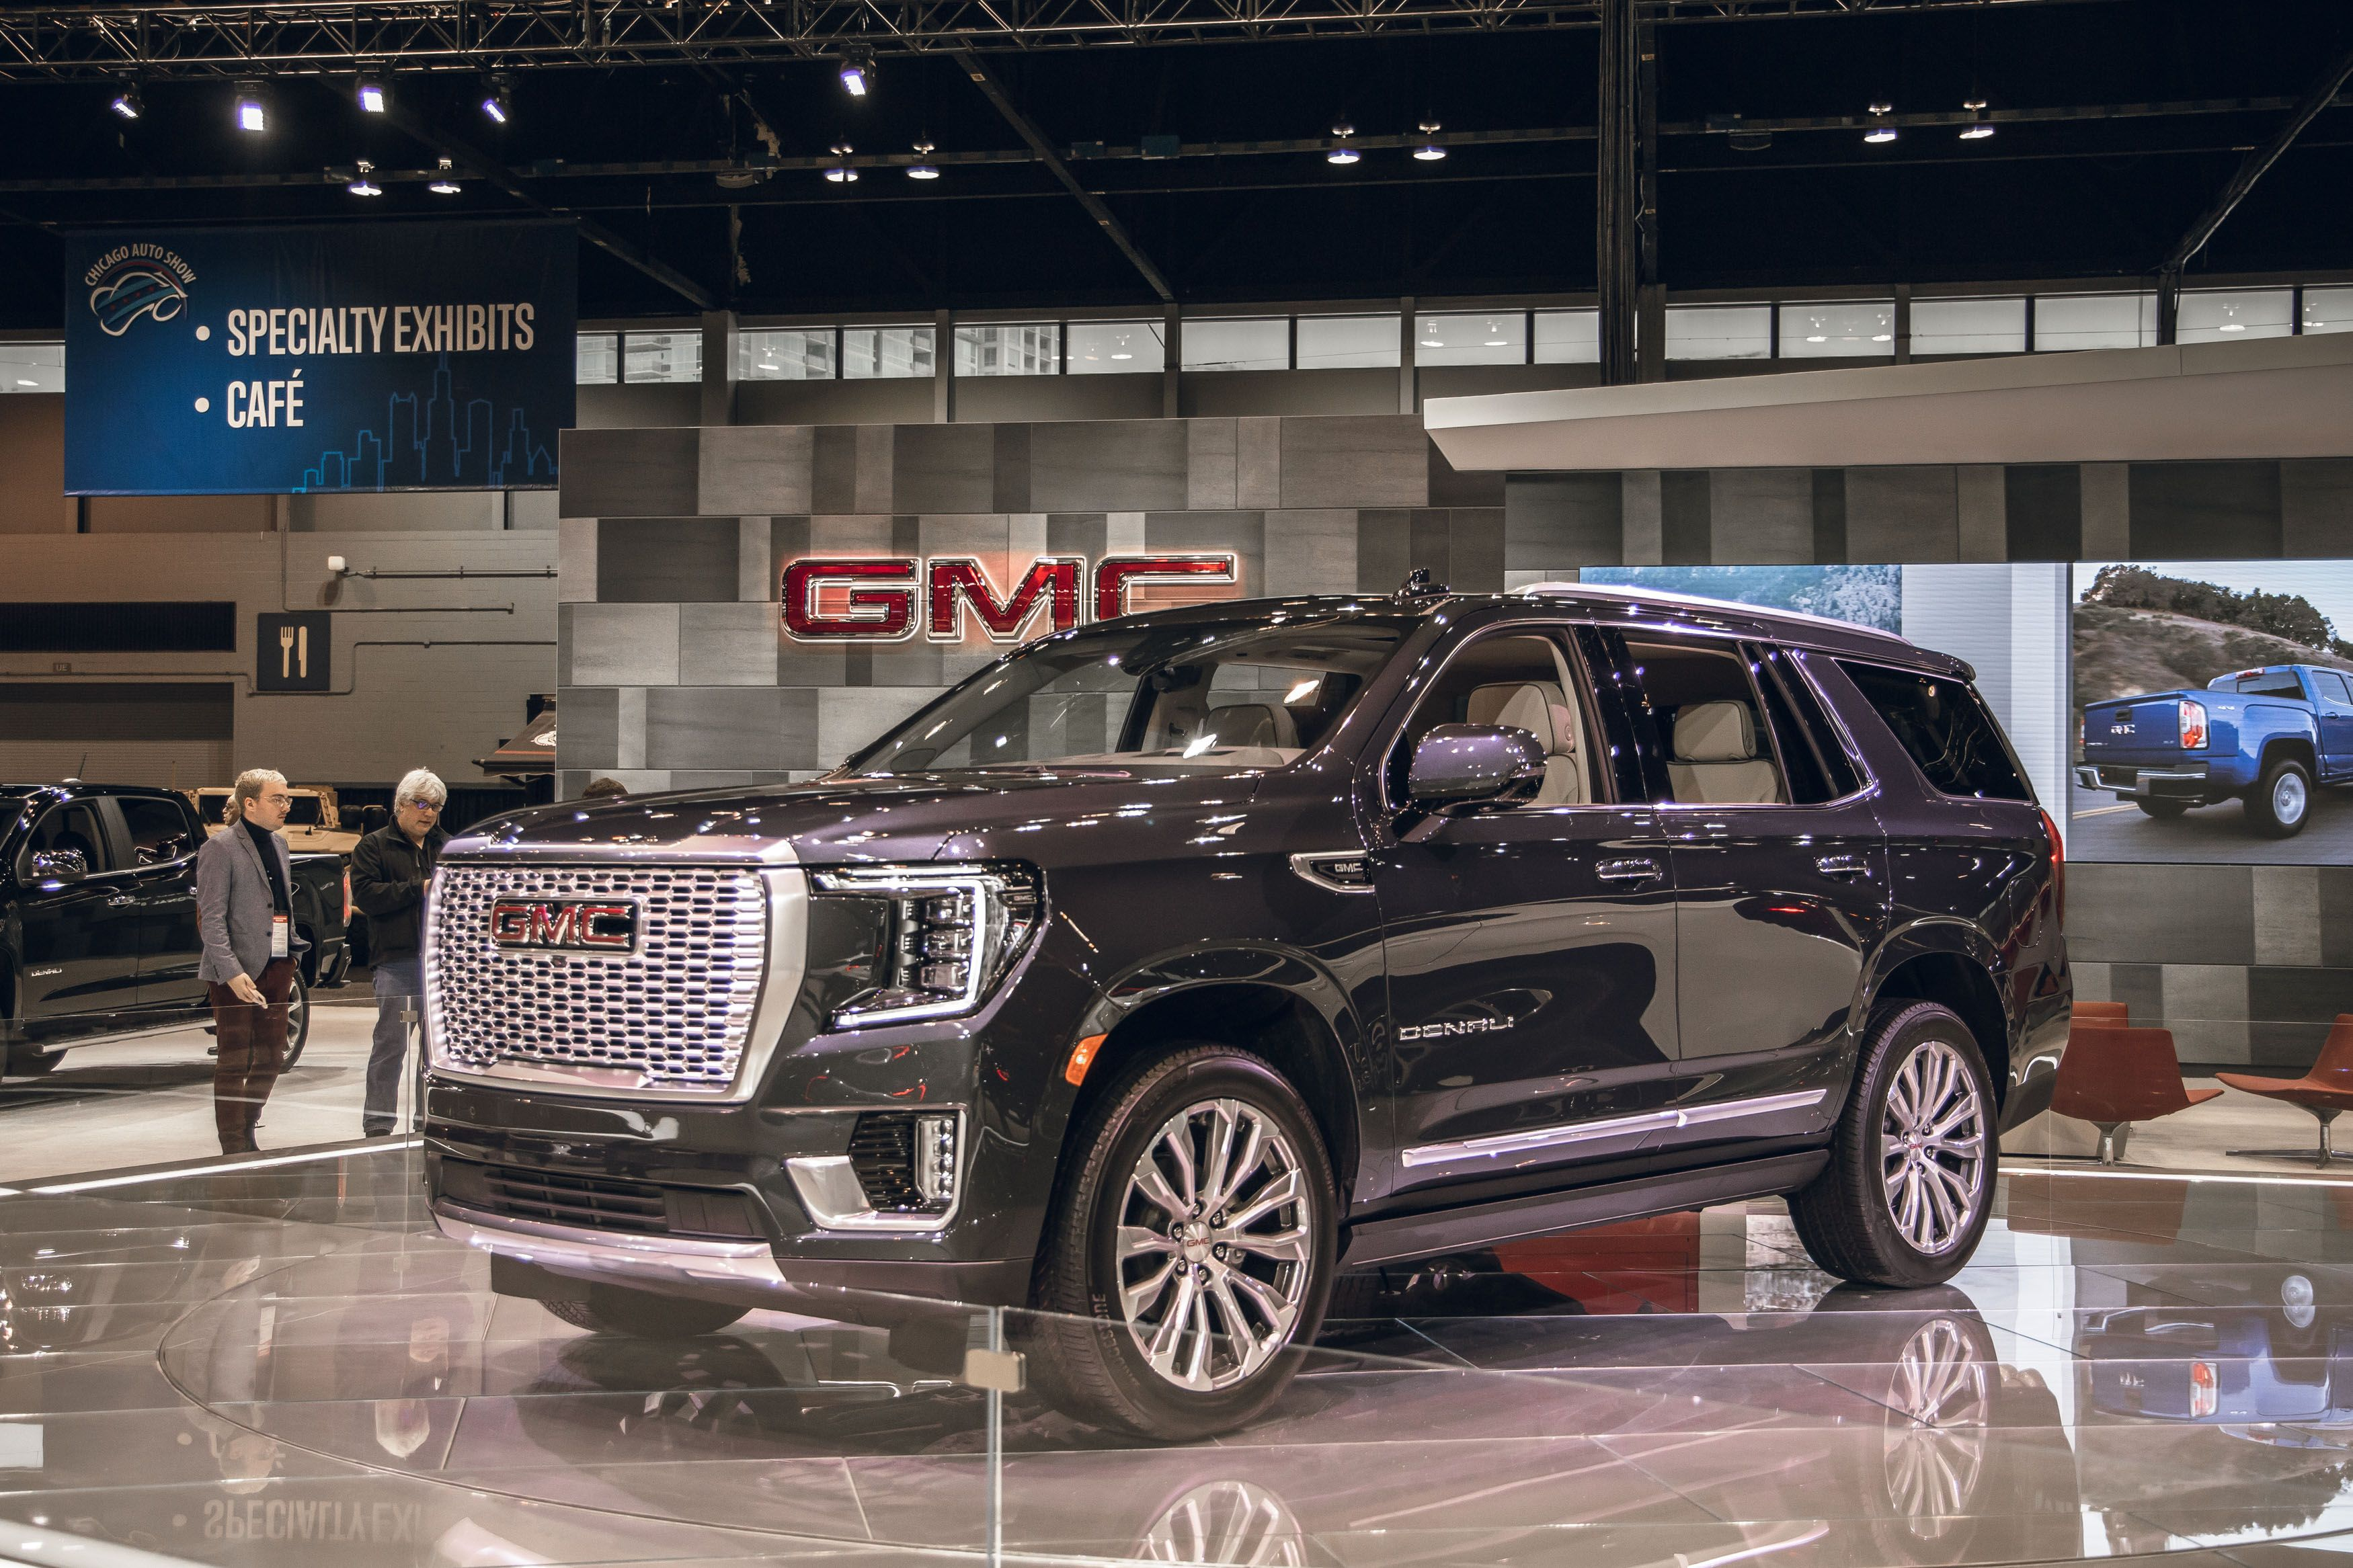 New 2021 Gmc Yukon Yukon Xl Get At4 Off Road Trim And Diesel Engine